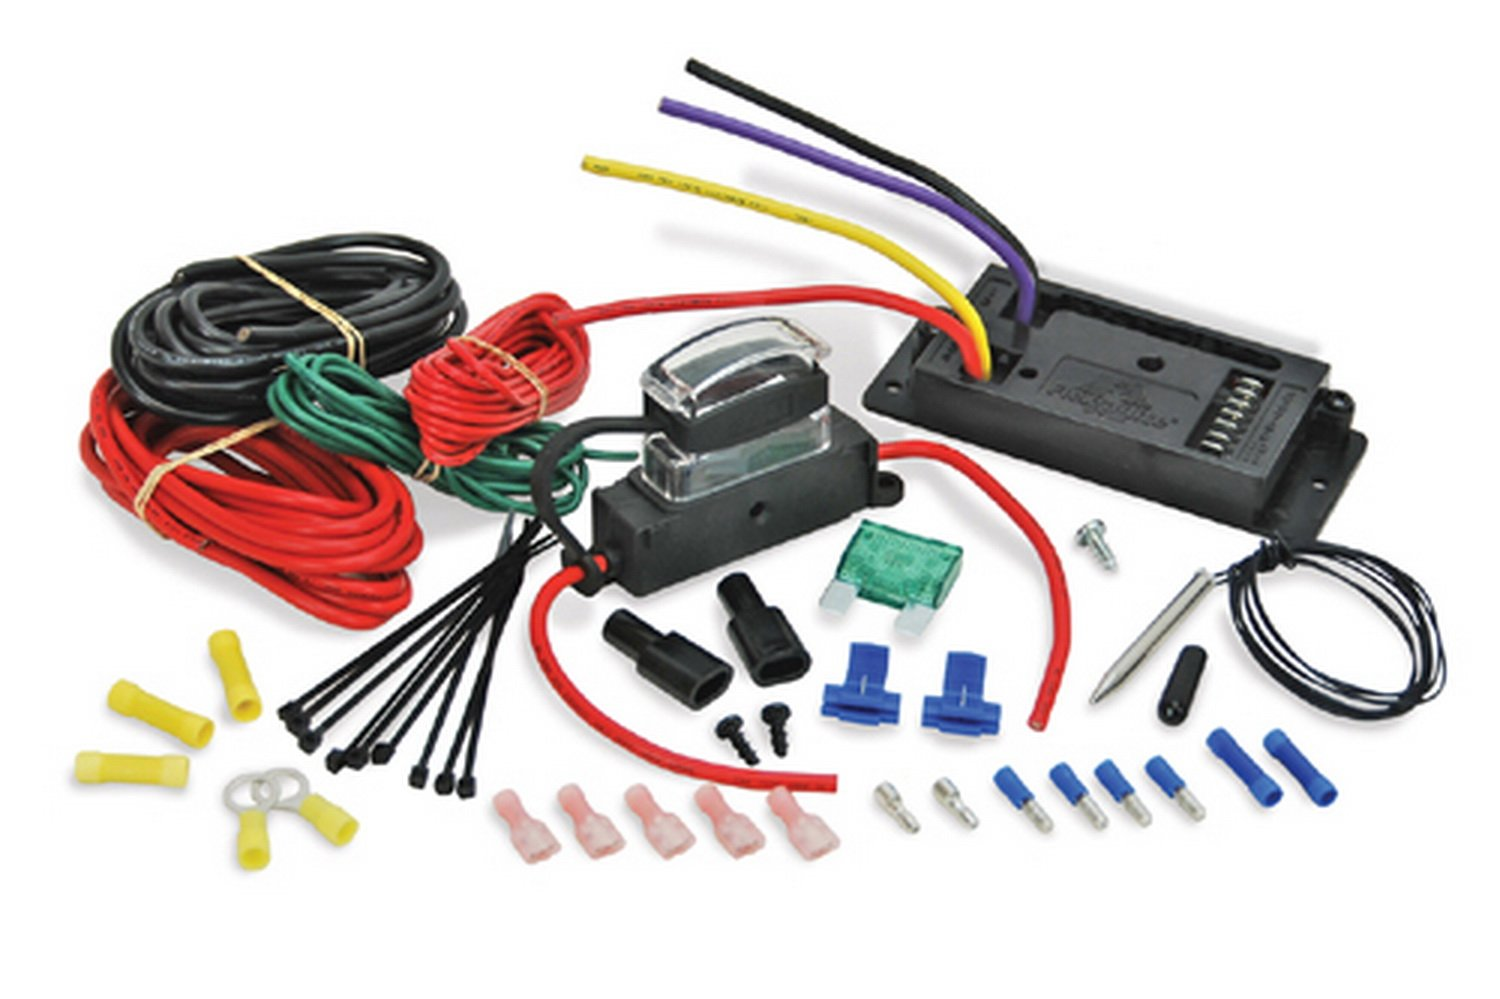 Ford Contour Fan Wiring Harness Trusted Schematics Diagram Cooling Flex Vs Electric Vannin Community And Forums Mustang